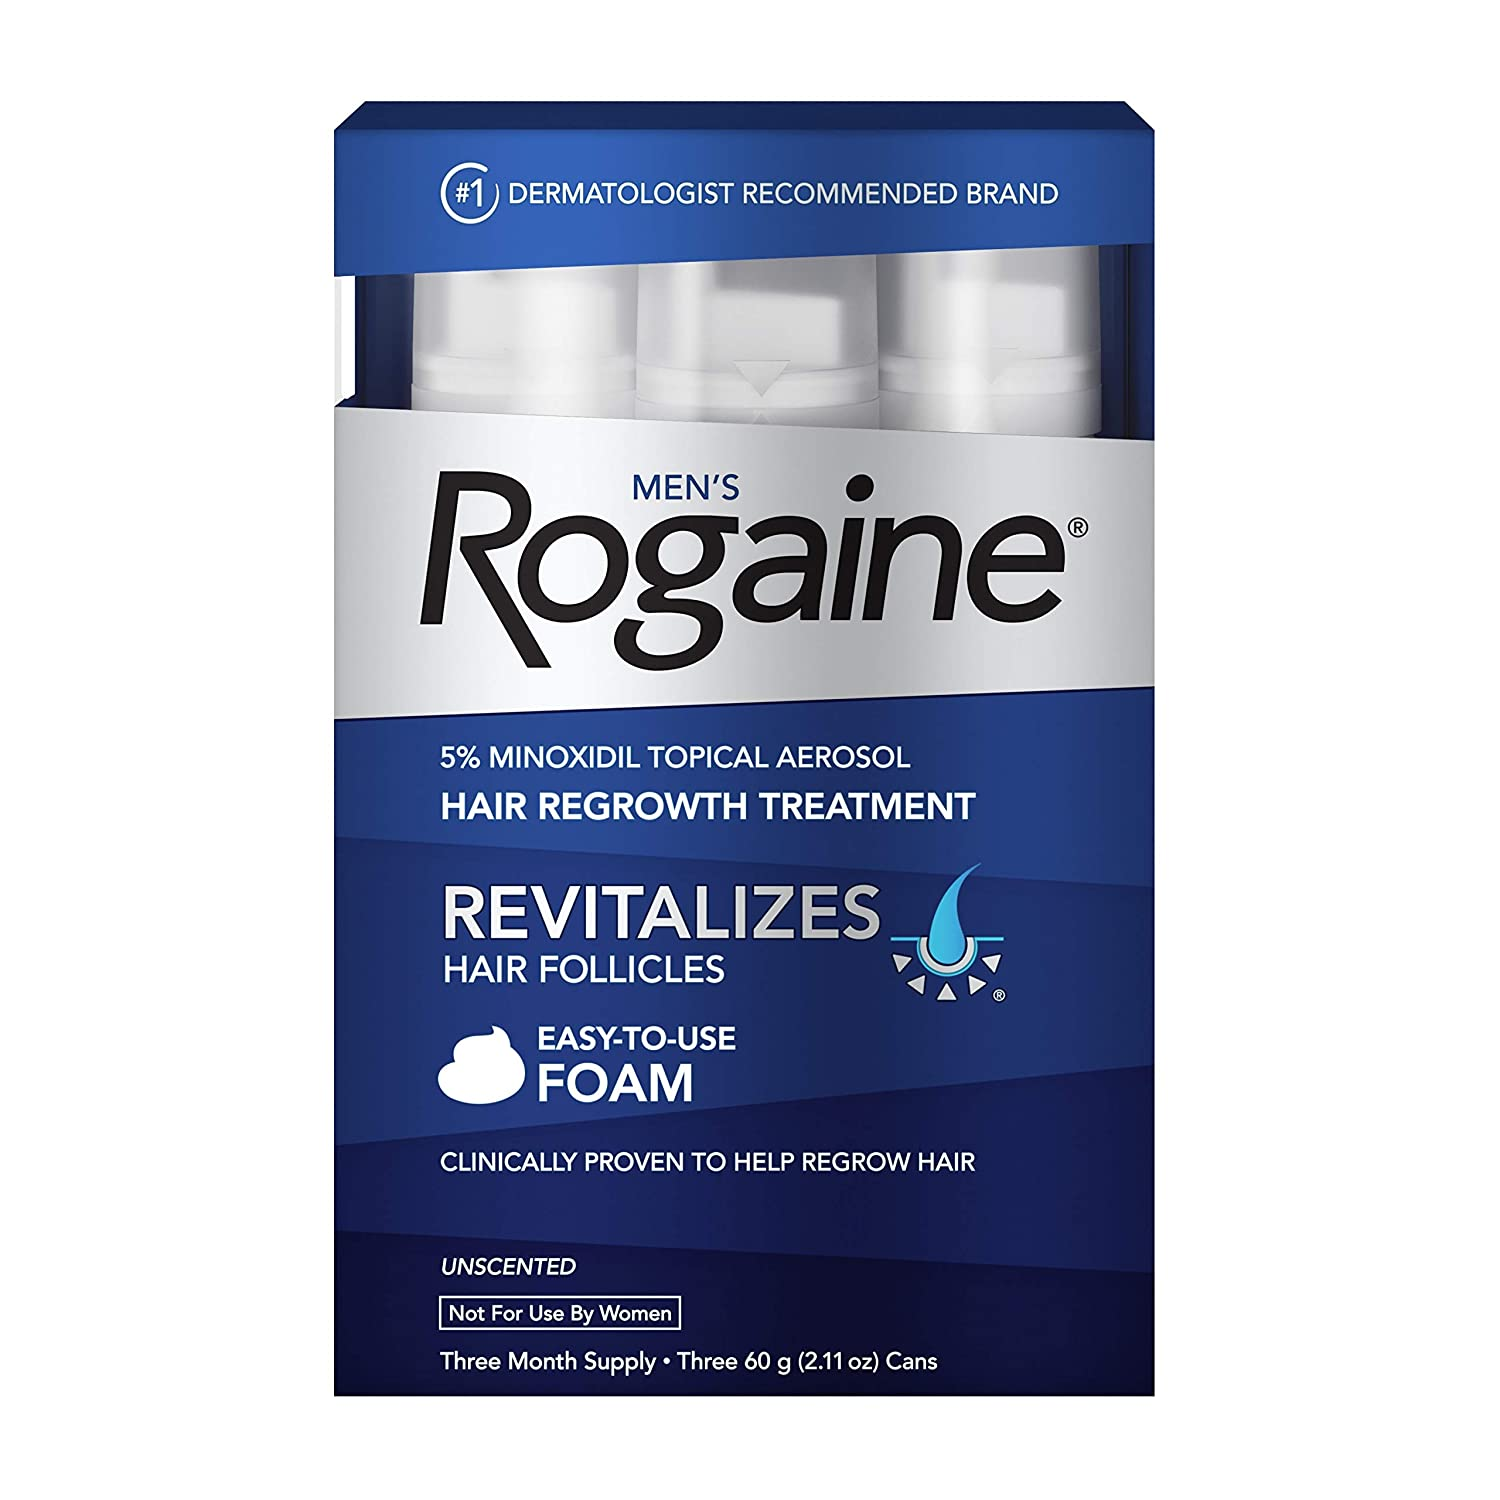 Best Hair Regrowth Treatments For Men & Women (Buying Guide) - Rogaine